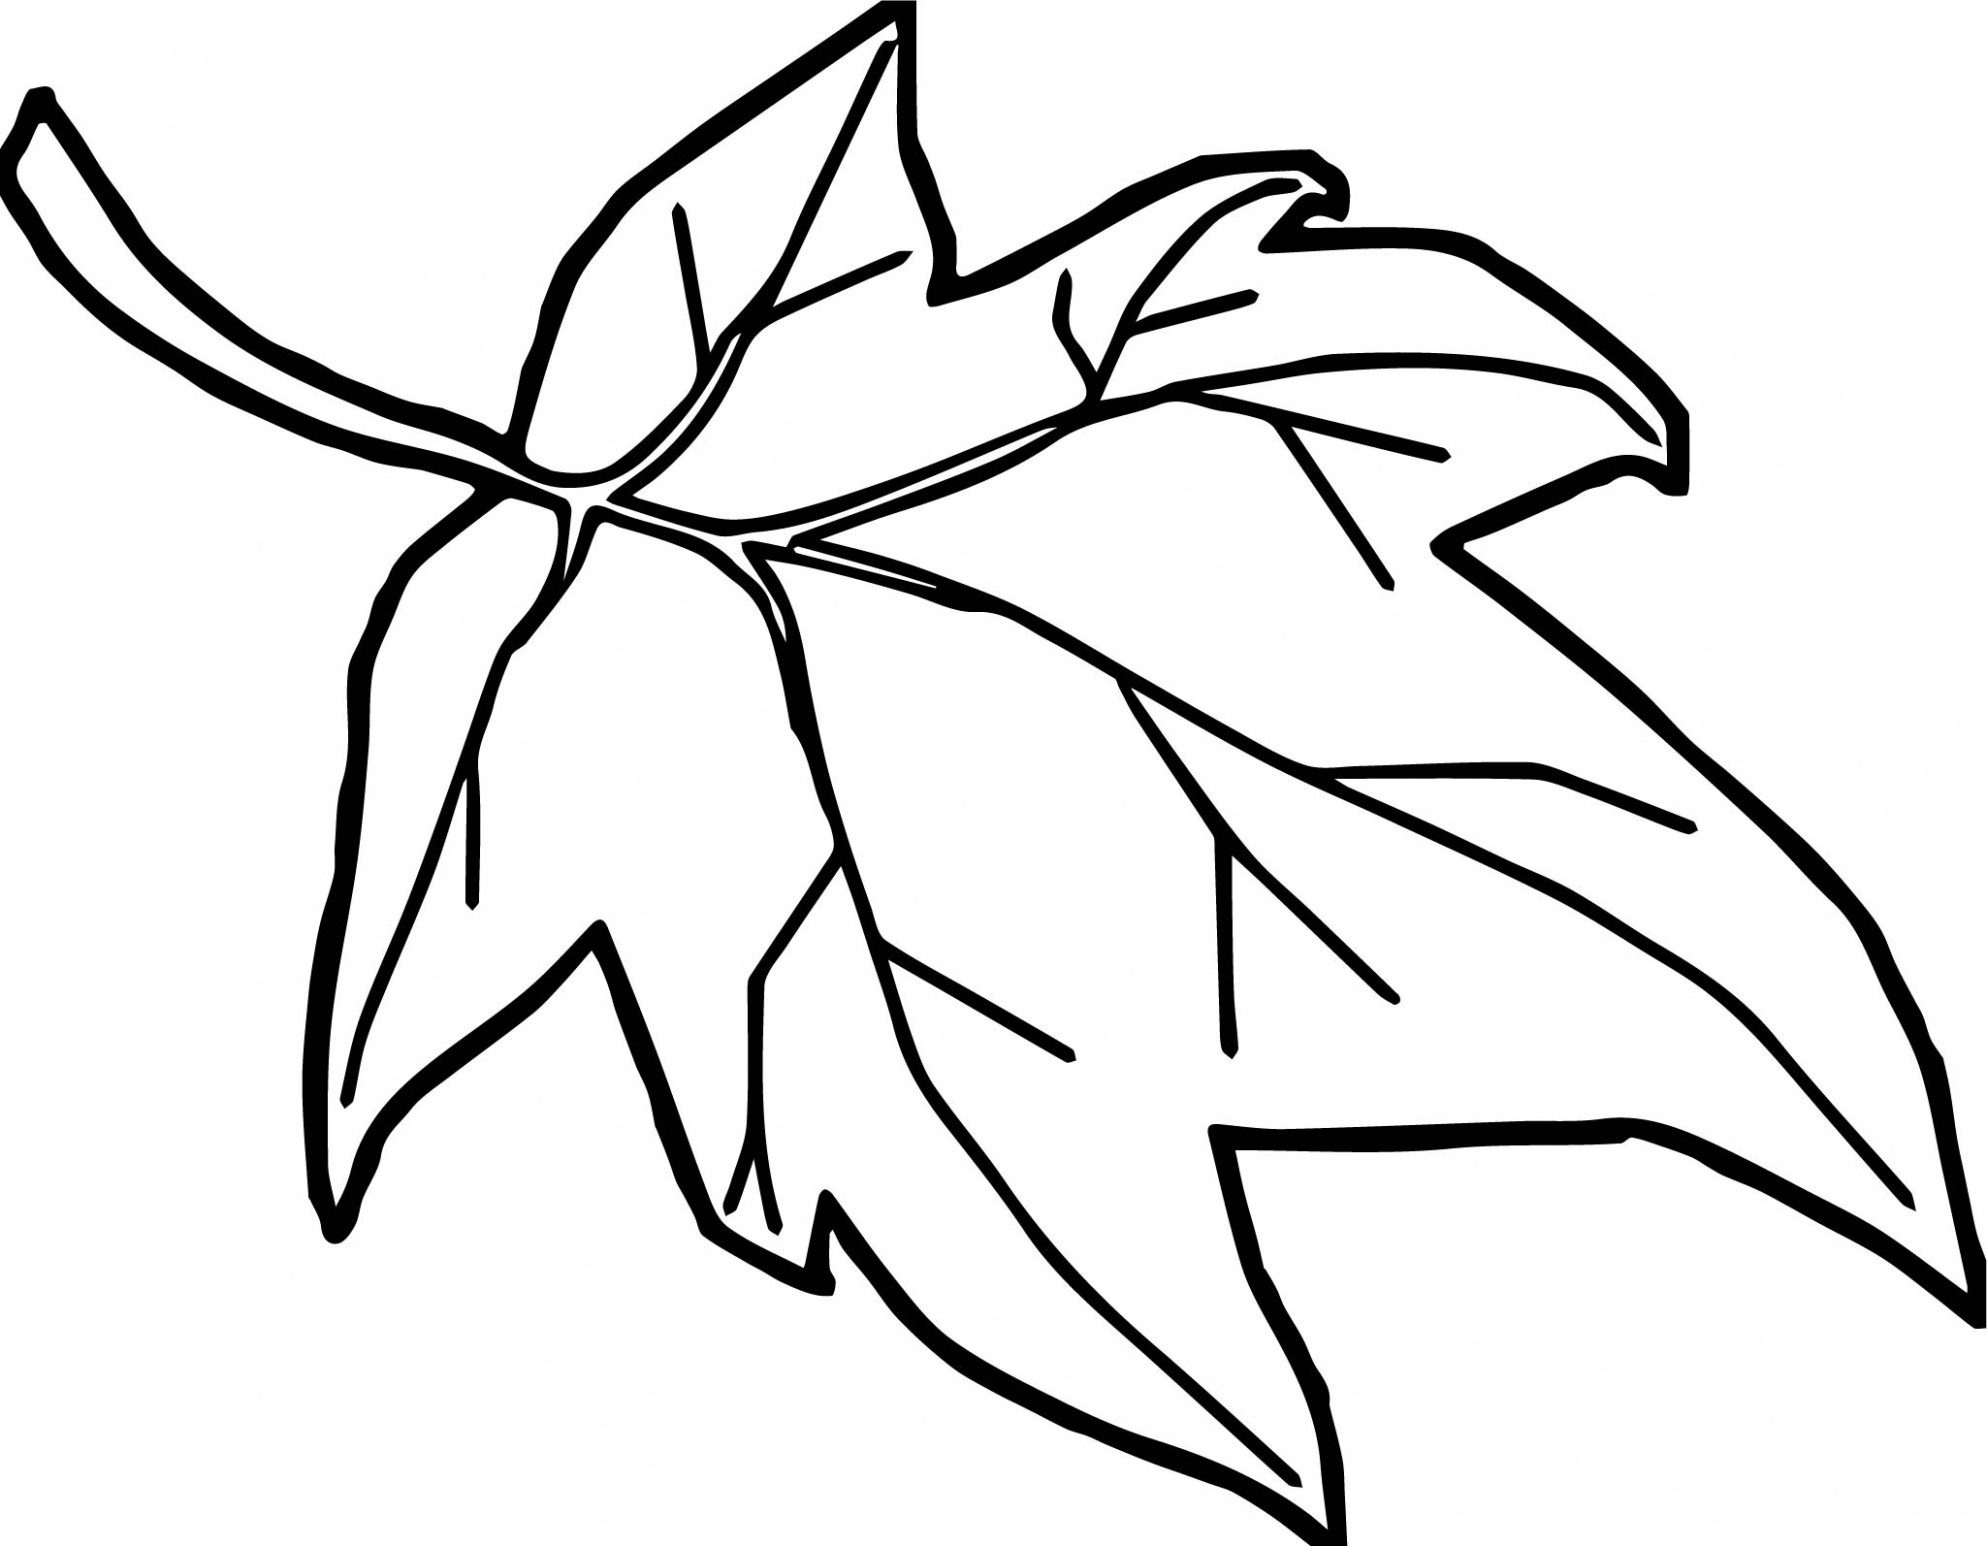 Coloring Pages: Coloring Books Autumn Maple Free Printable Preschool ..